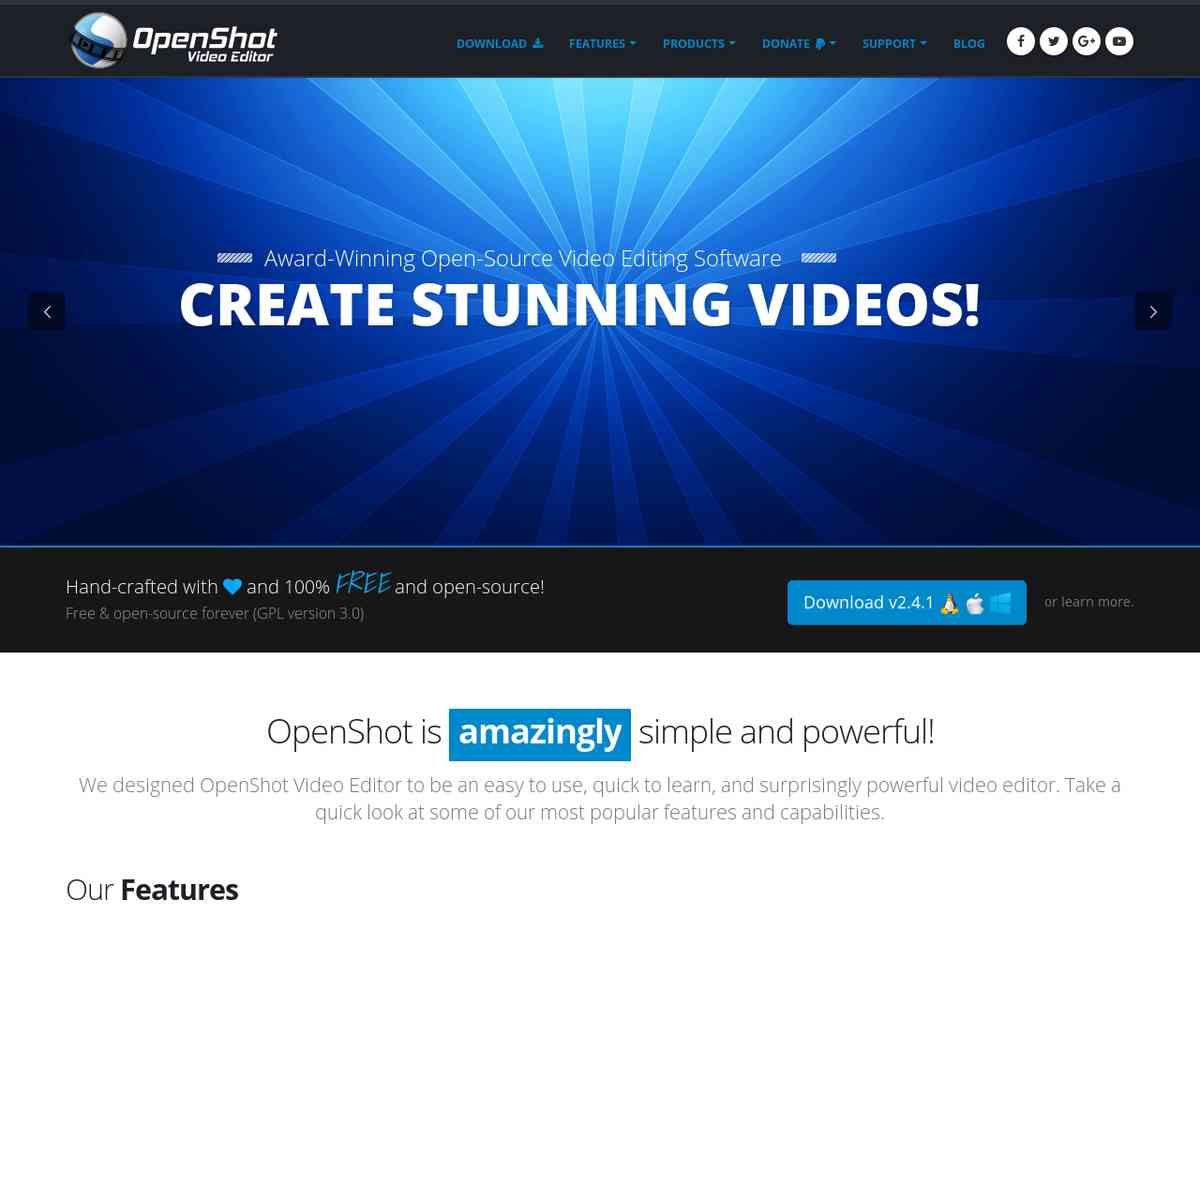 OpenShot Video Editor | Free, Open, and Award-Winning Video Editor for Linux, Mac, and Windows!